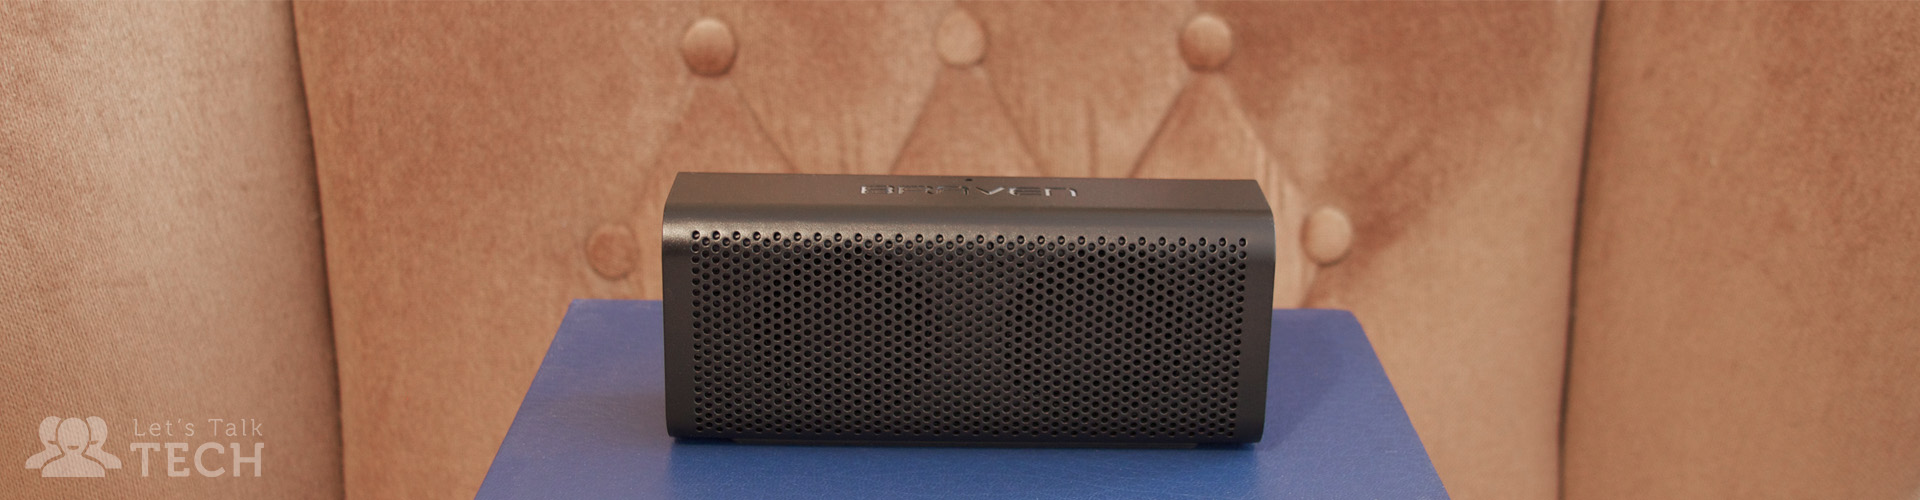 Braven 705 Bluetooth Speaker Review: Practical Compact Sound